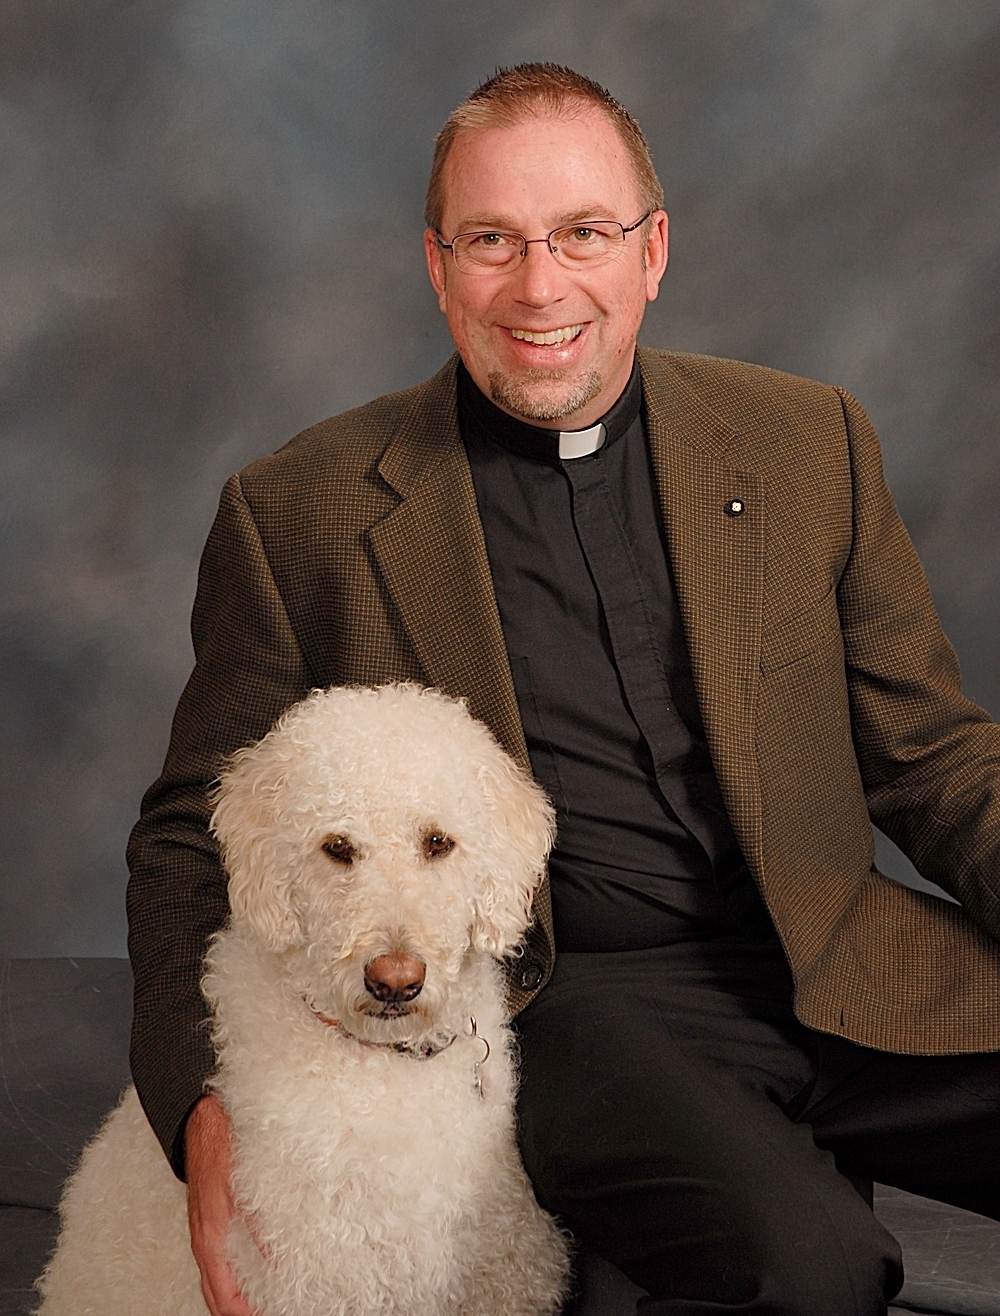 """Congratulations to Father Ron! OnTuesday September 14 he will celebrate the 36th Anniversary of his Ordination!Father Ron, Your Parish loves and appreciates youand we thank God for you,your leadership and ministry!""""The priest is not a priest for himself; he does not give himself absolution; he does not administer the Sacraments to himself.He is not for himself, he is for you. ~St John Vianney, Curé of Ars"""